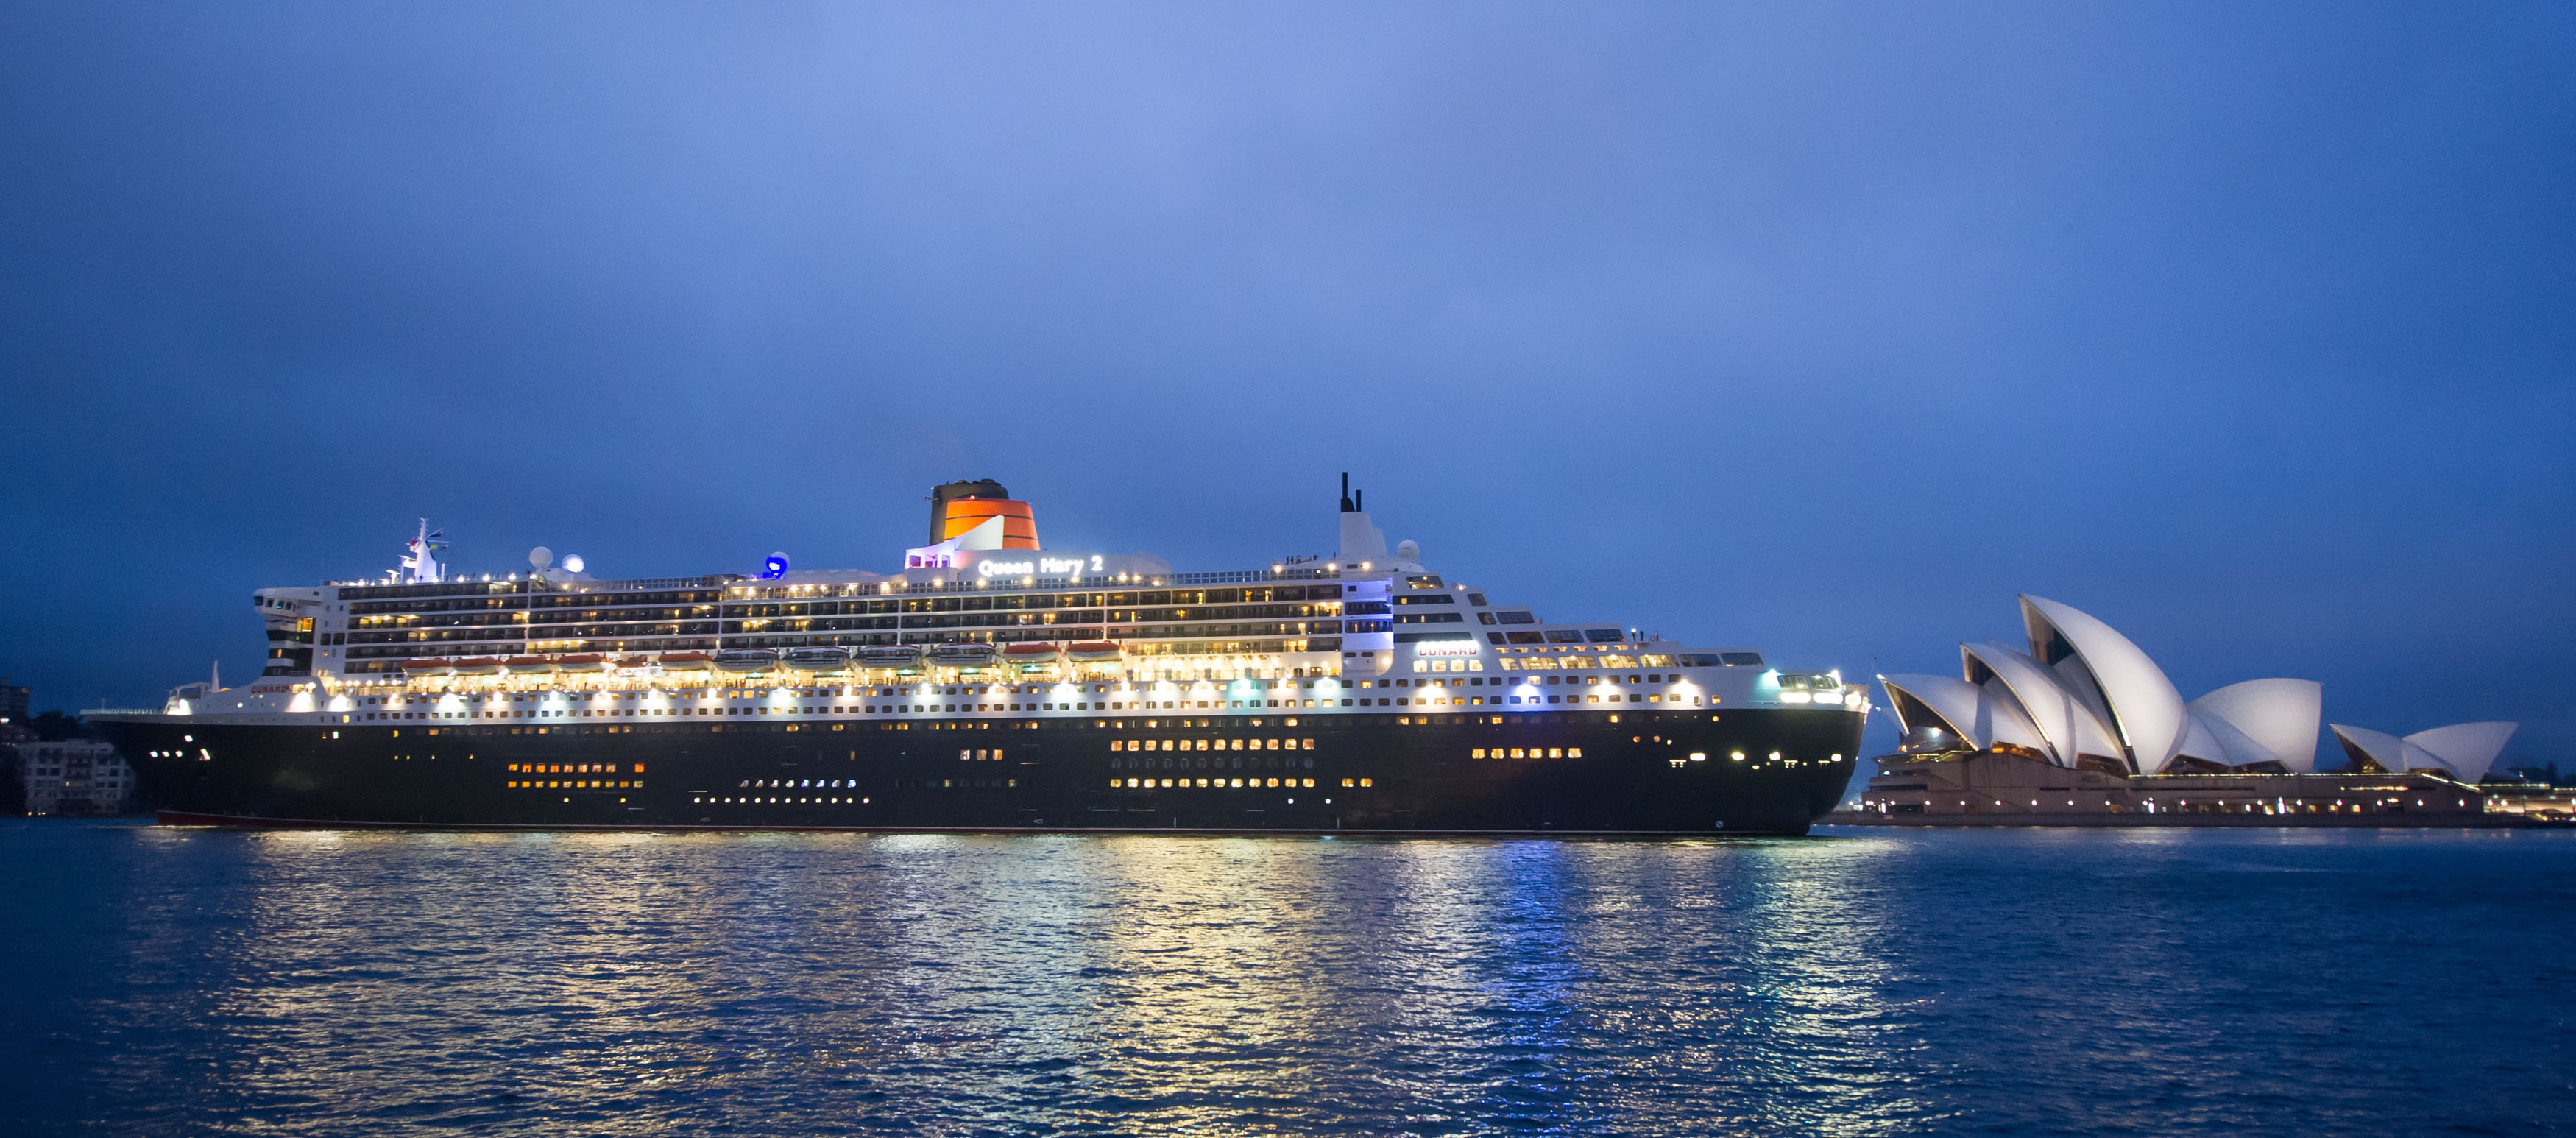 Queen Mary 2 celebrates 10th anniversary in Sydney